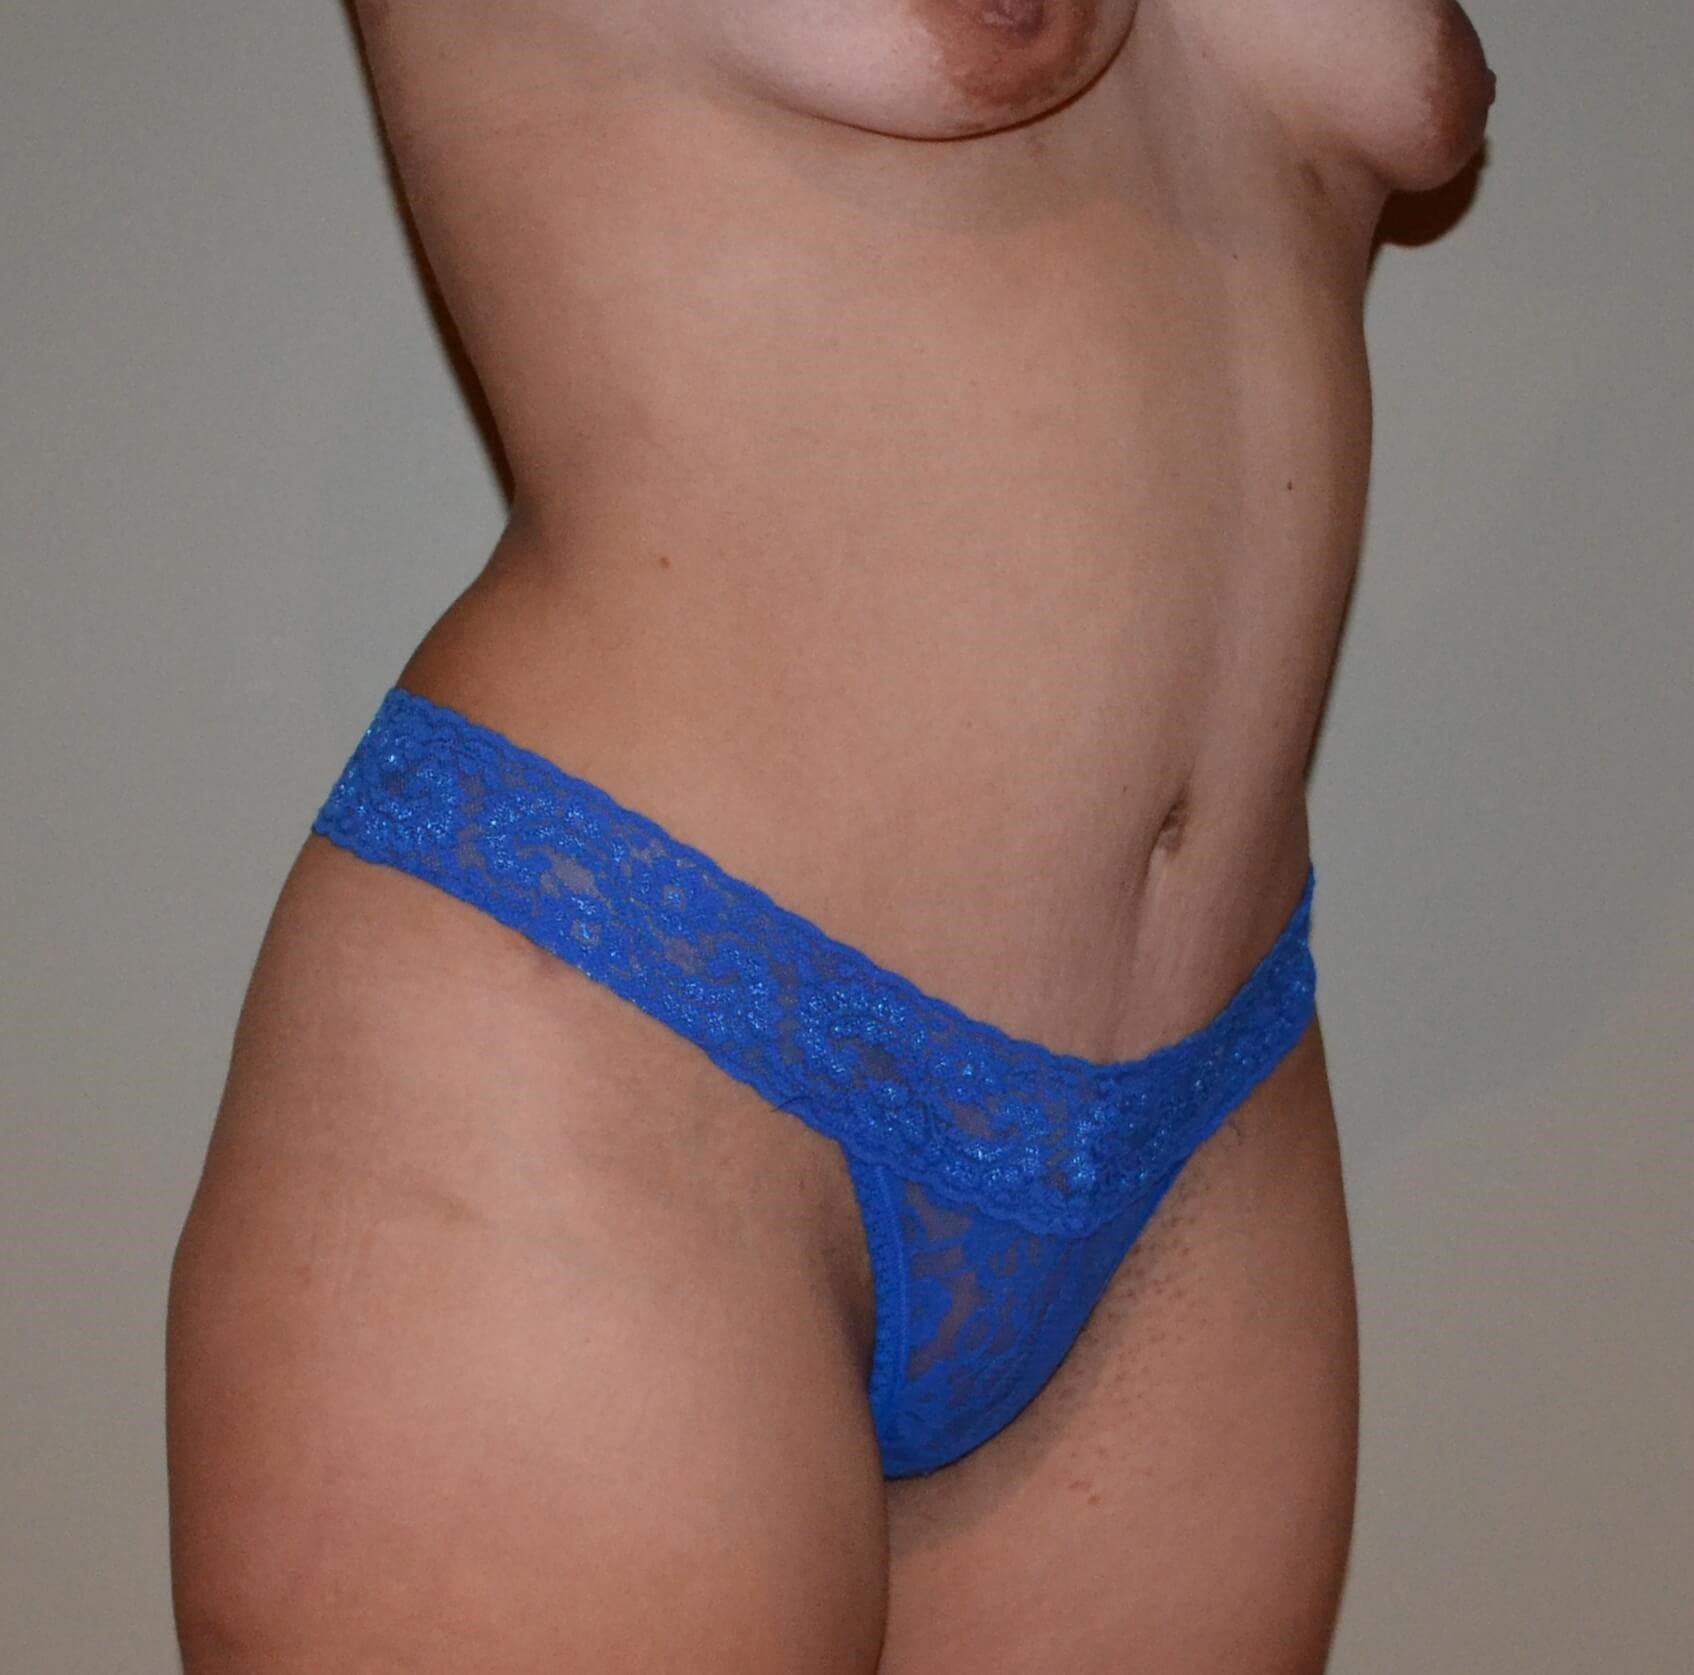 Tummy tuck After, frontal 3/4 view